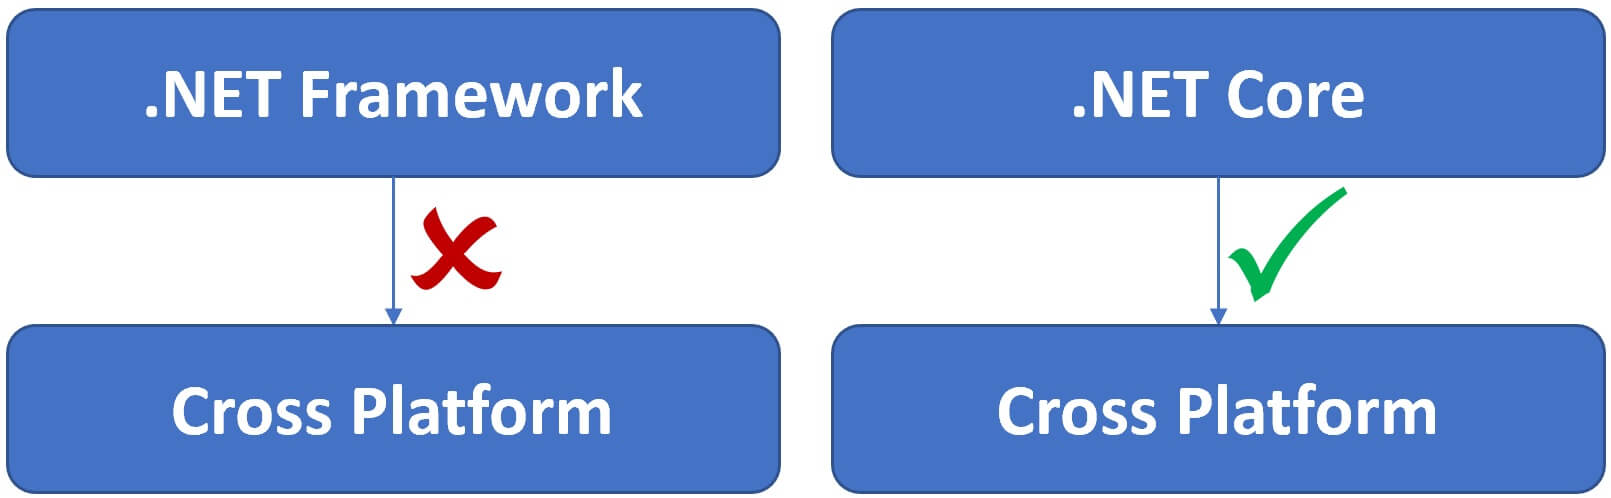 difference between .net core and .net framework